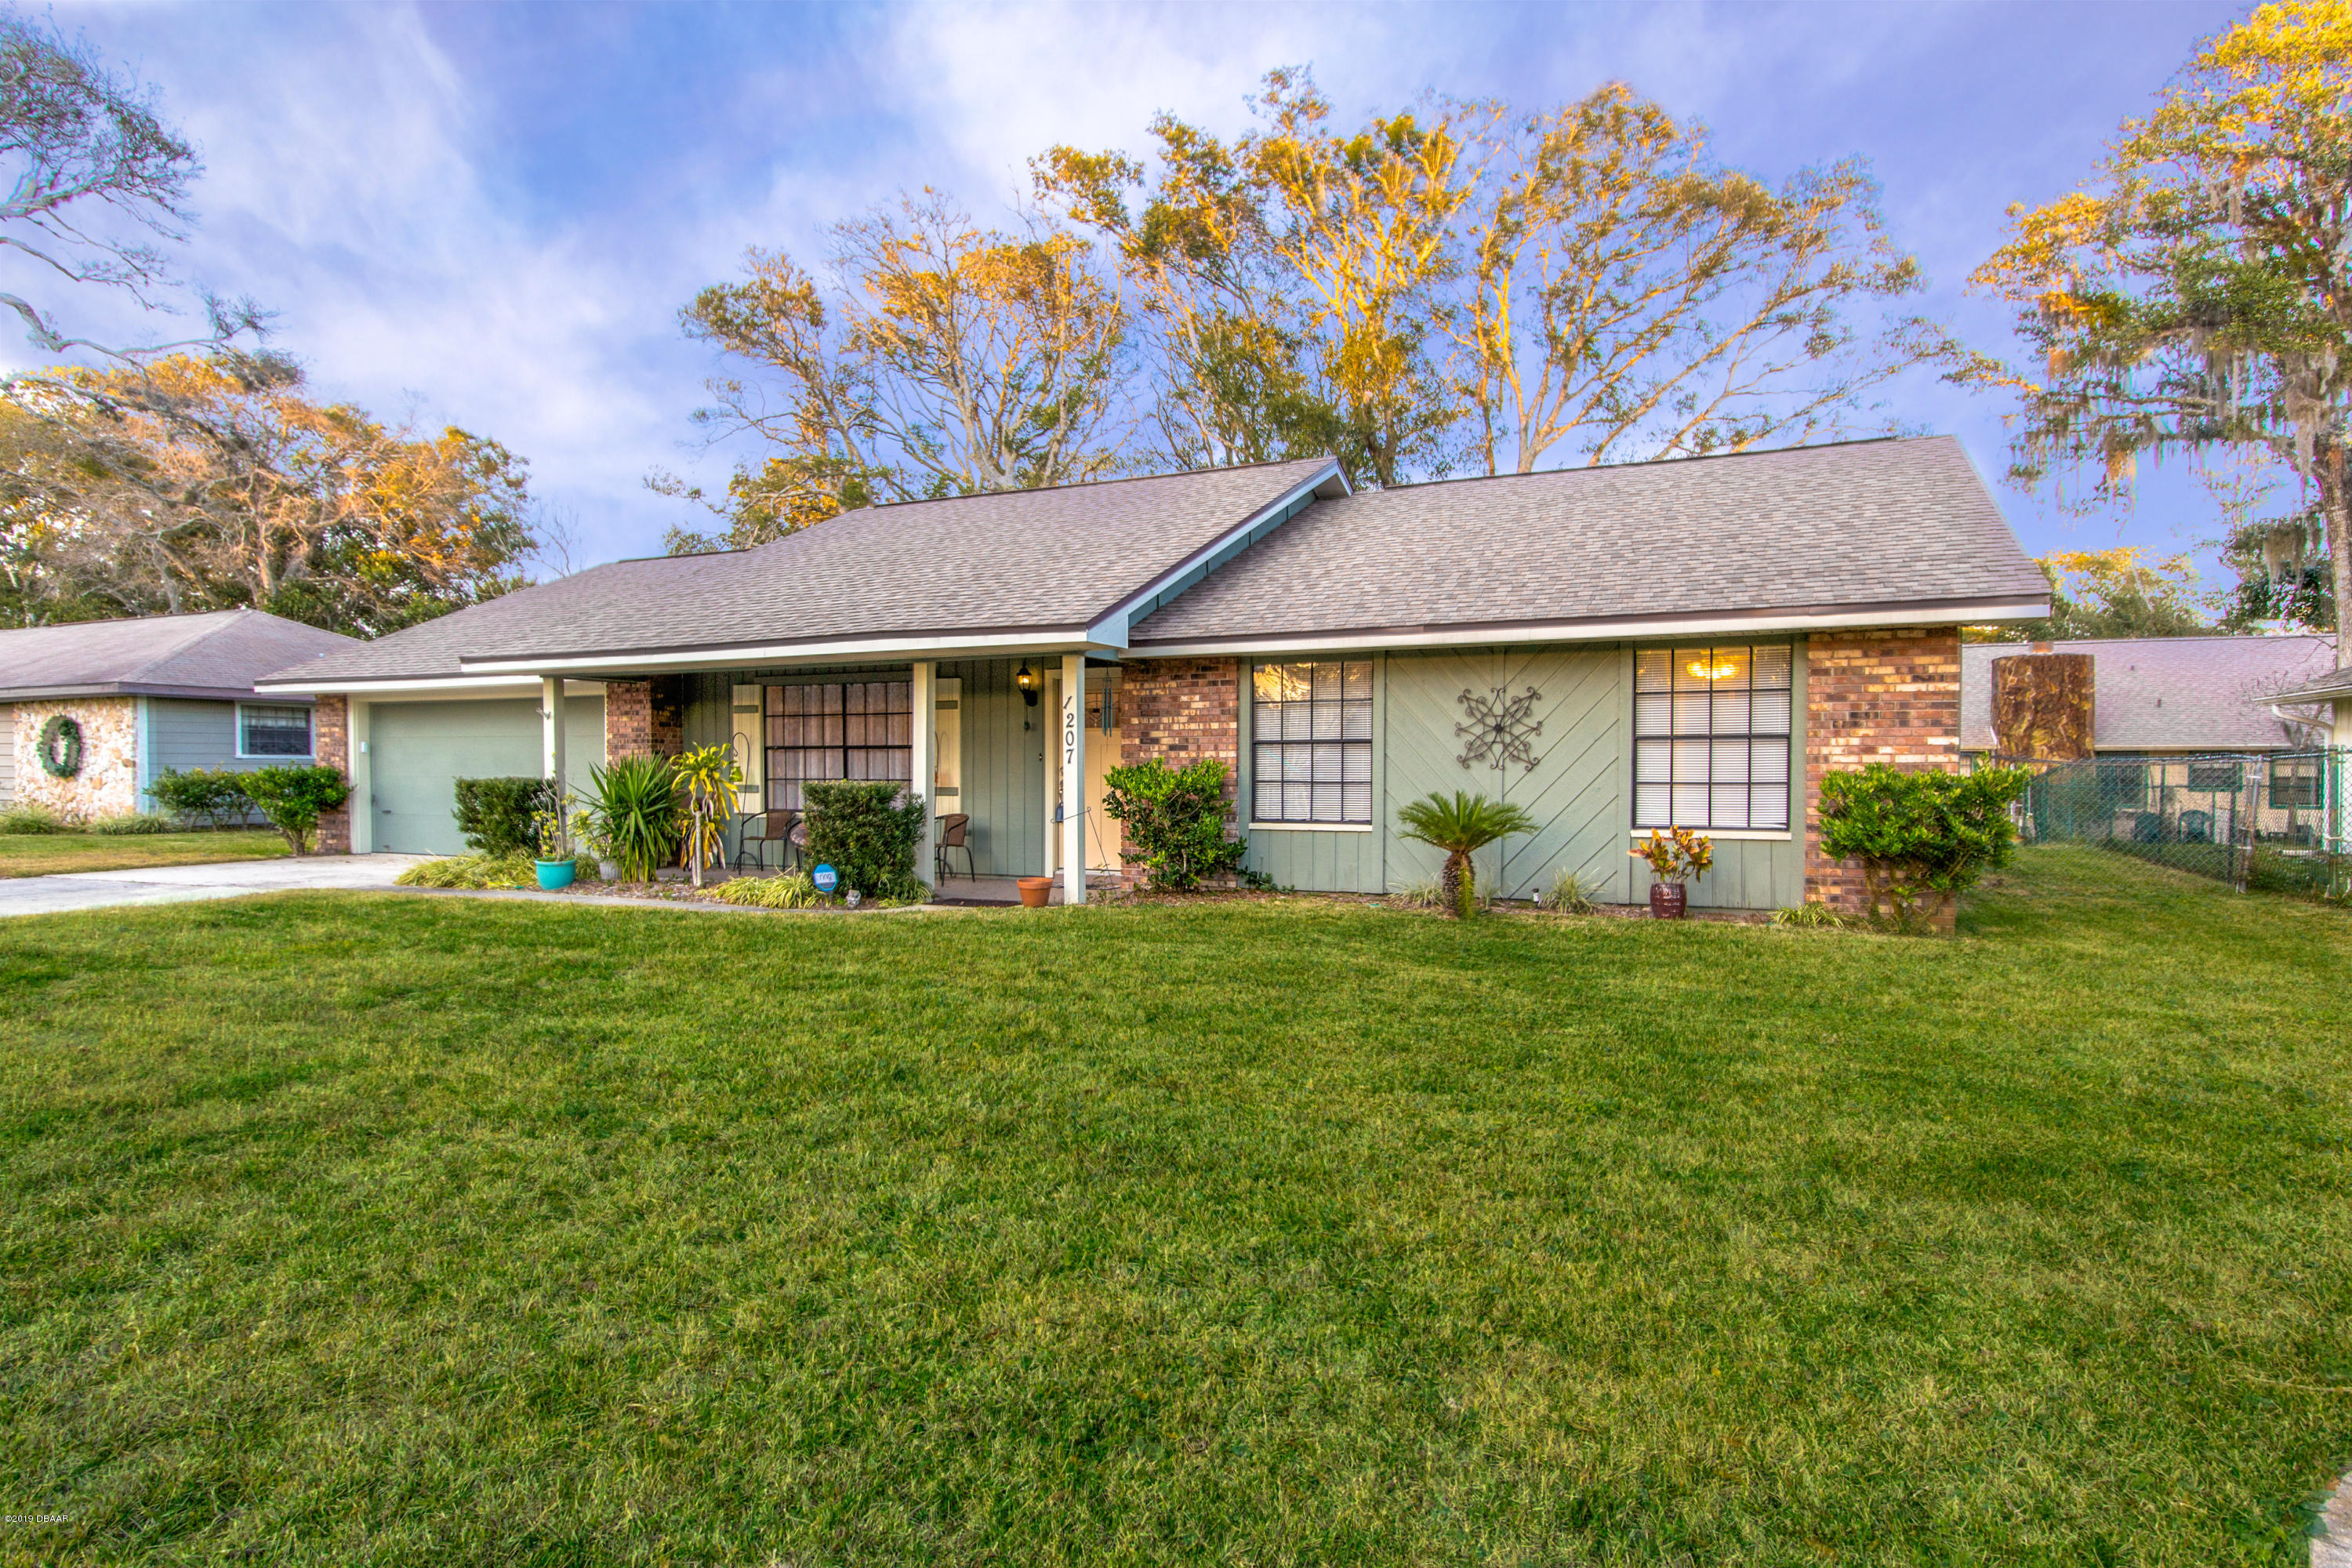 1207 Parkside Drive 32174 - One of Ormond Beach Homes for Sale